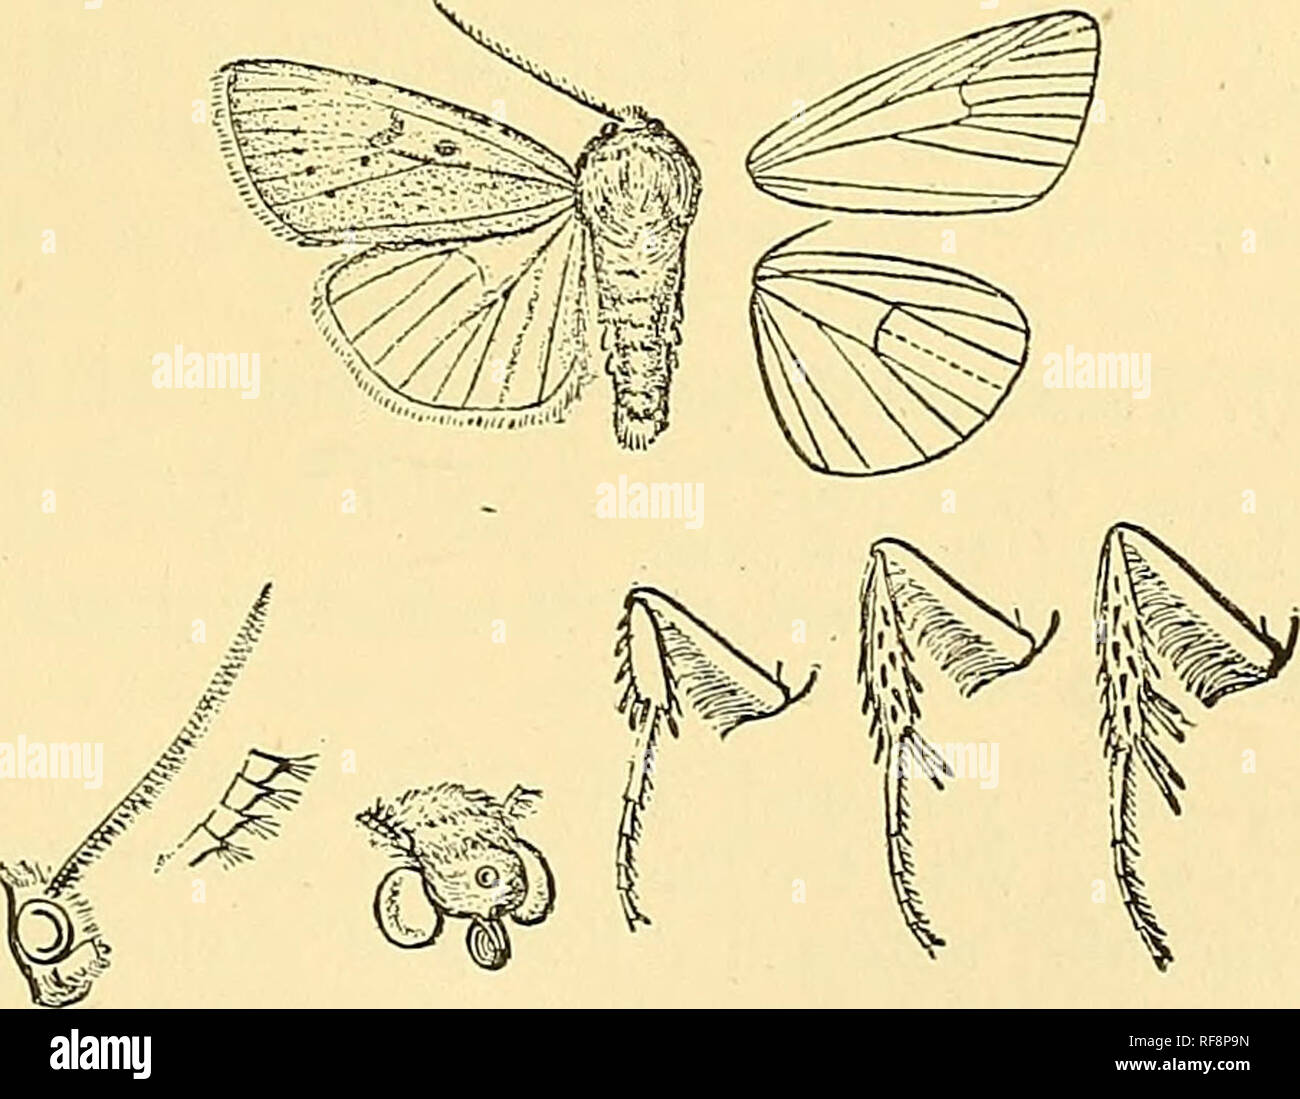 . Catalogue of the Lepidoptera Phalaenae in the British Museum. Moths; Lepidoptera. POEOSAGROXIS. 145 *254. Porosagrotis longidens. (Plate LIX. fig. 26.) Feltia longidens, Smith, Bull. U.S. Nat. Mus. 38, p. 217 (1890); id. Cat. Noct. N. Am. p. 81. 5 . Head and thorax brownish ochreous; tegula) with fine dark roedial line ; patagia with black line near upper edge ; tarsi blackish with pale rings ; abdomen ochreous white. Pore wing brownish ochreous ; the veins with dark streaks; the costa, submedian fold, cell, discal area, and a streak above vein 2 dark brown ; a blackish streak in submedian f - Stock Image